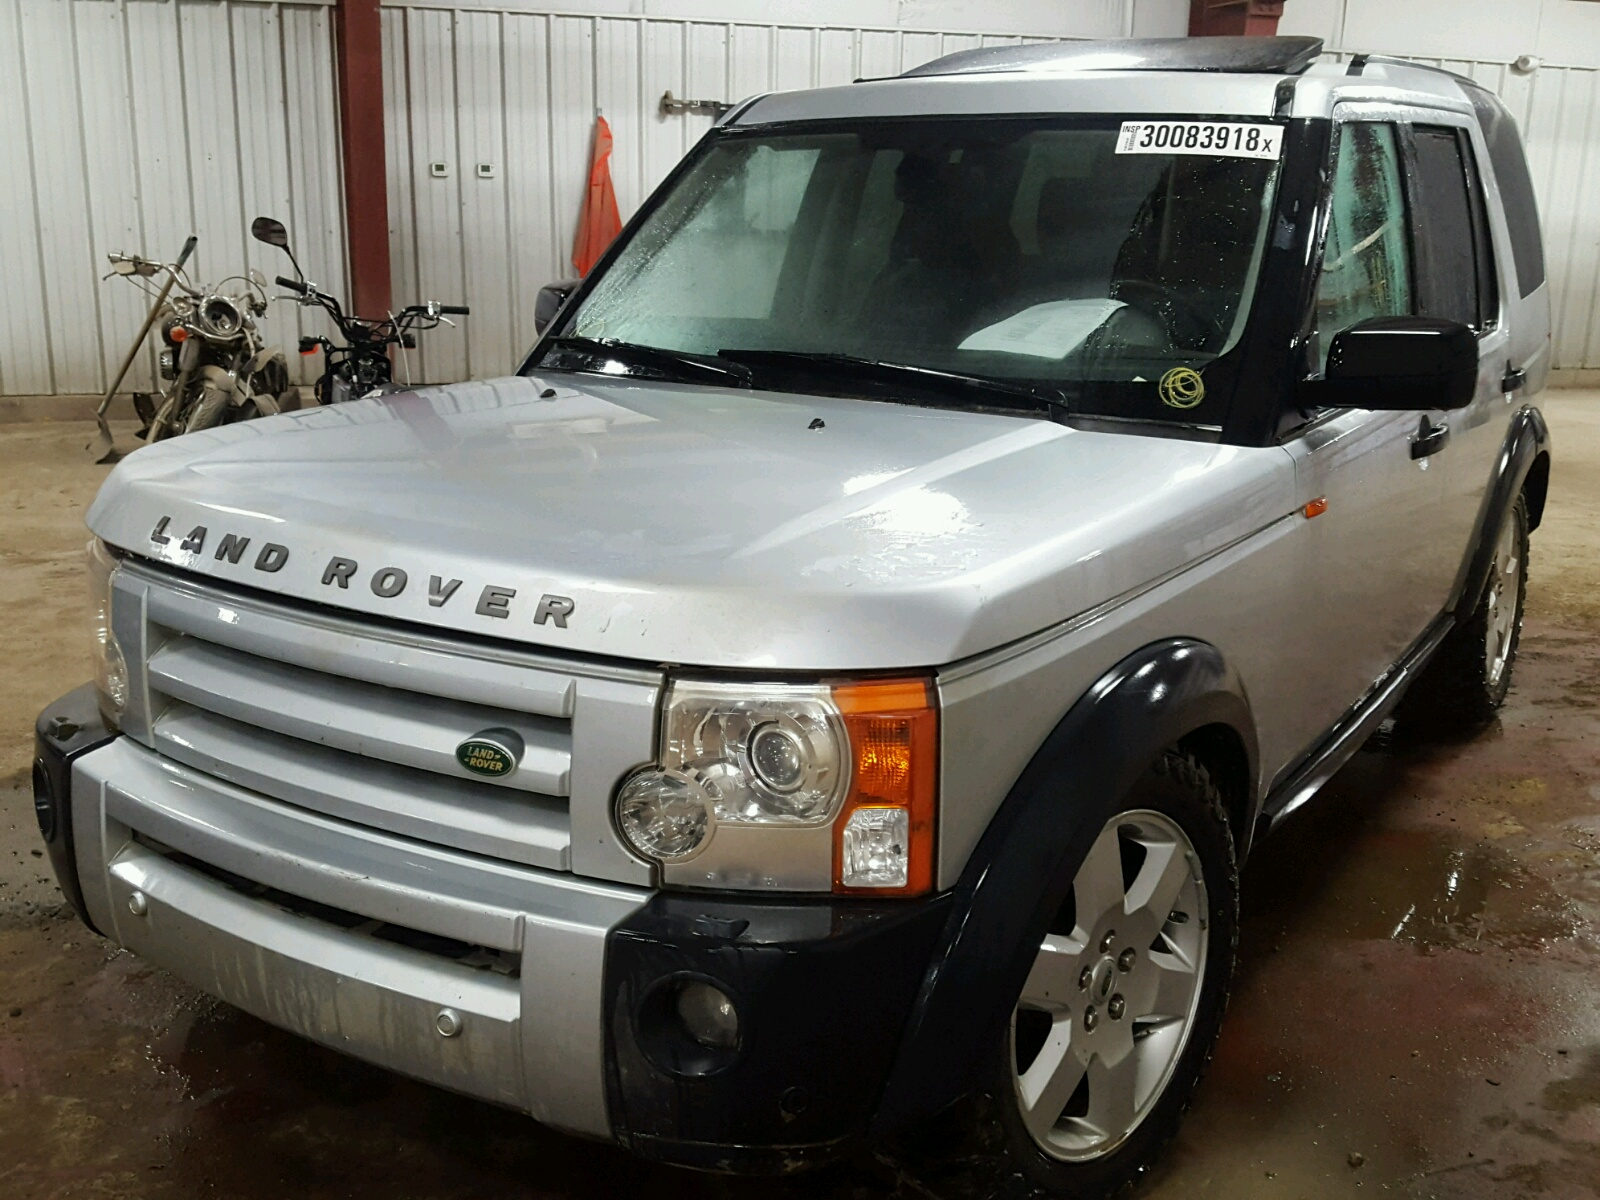 of for copart auctions carfinder en sale ga left landrover savannah title in salvage blue rover cert on land online view hse lot auto